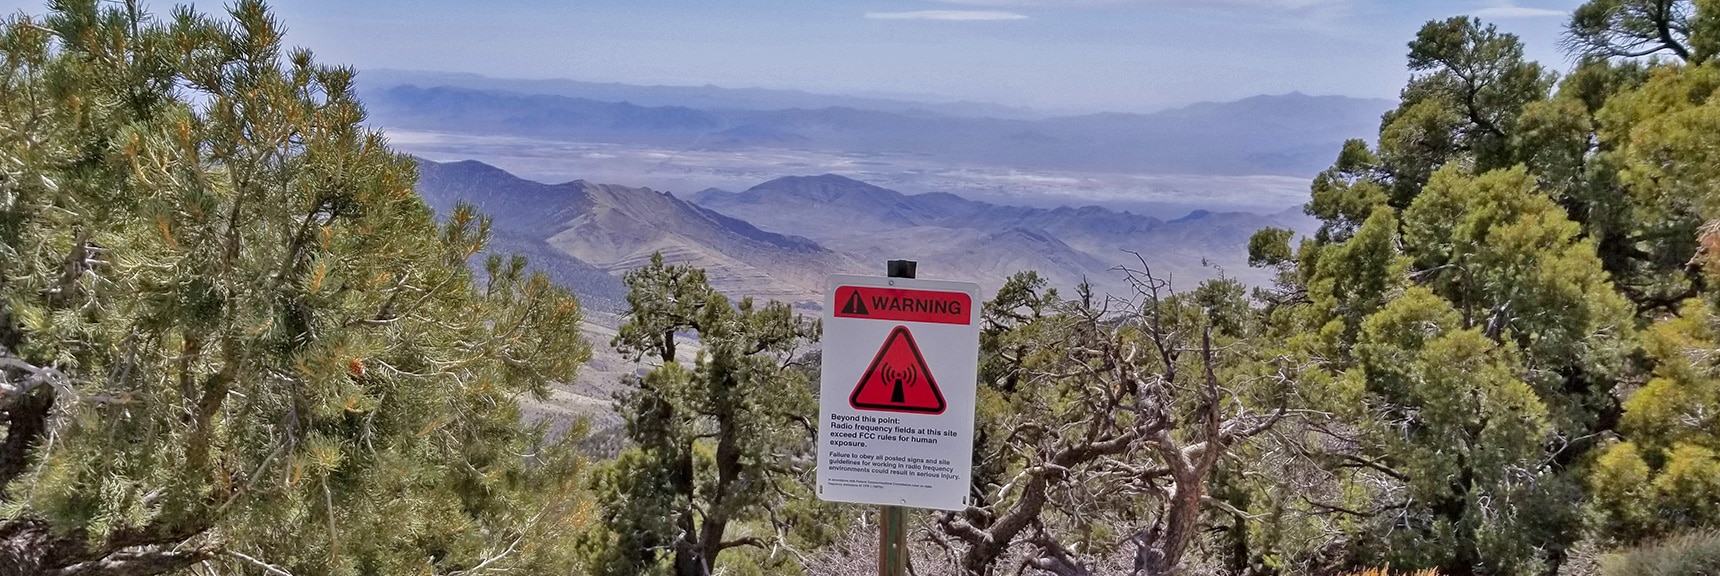 View East from the North Summit. Radio Frequency Warning: Exceeds FCC Limit for Humans! | Potosi Mountain Spring Mountains Nevada